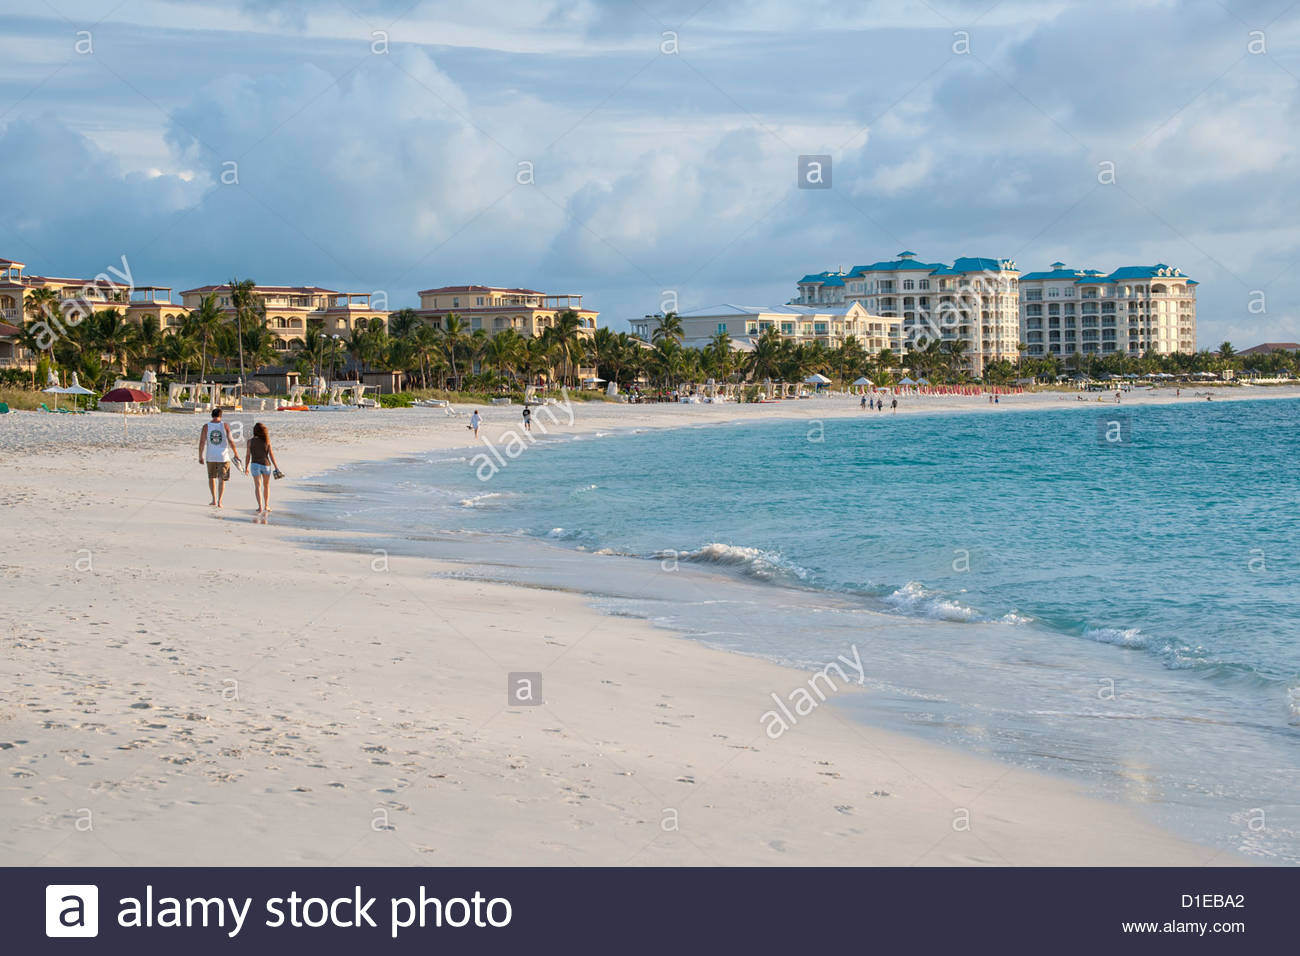 Stretch of hotels and palm trees along famous Grace Bay beach, Providenciales, Turks and Caicos Islands, West Indies, Stock Photo